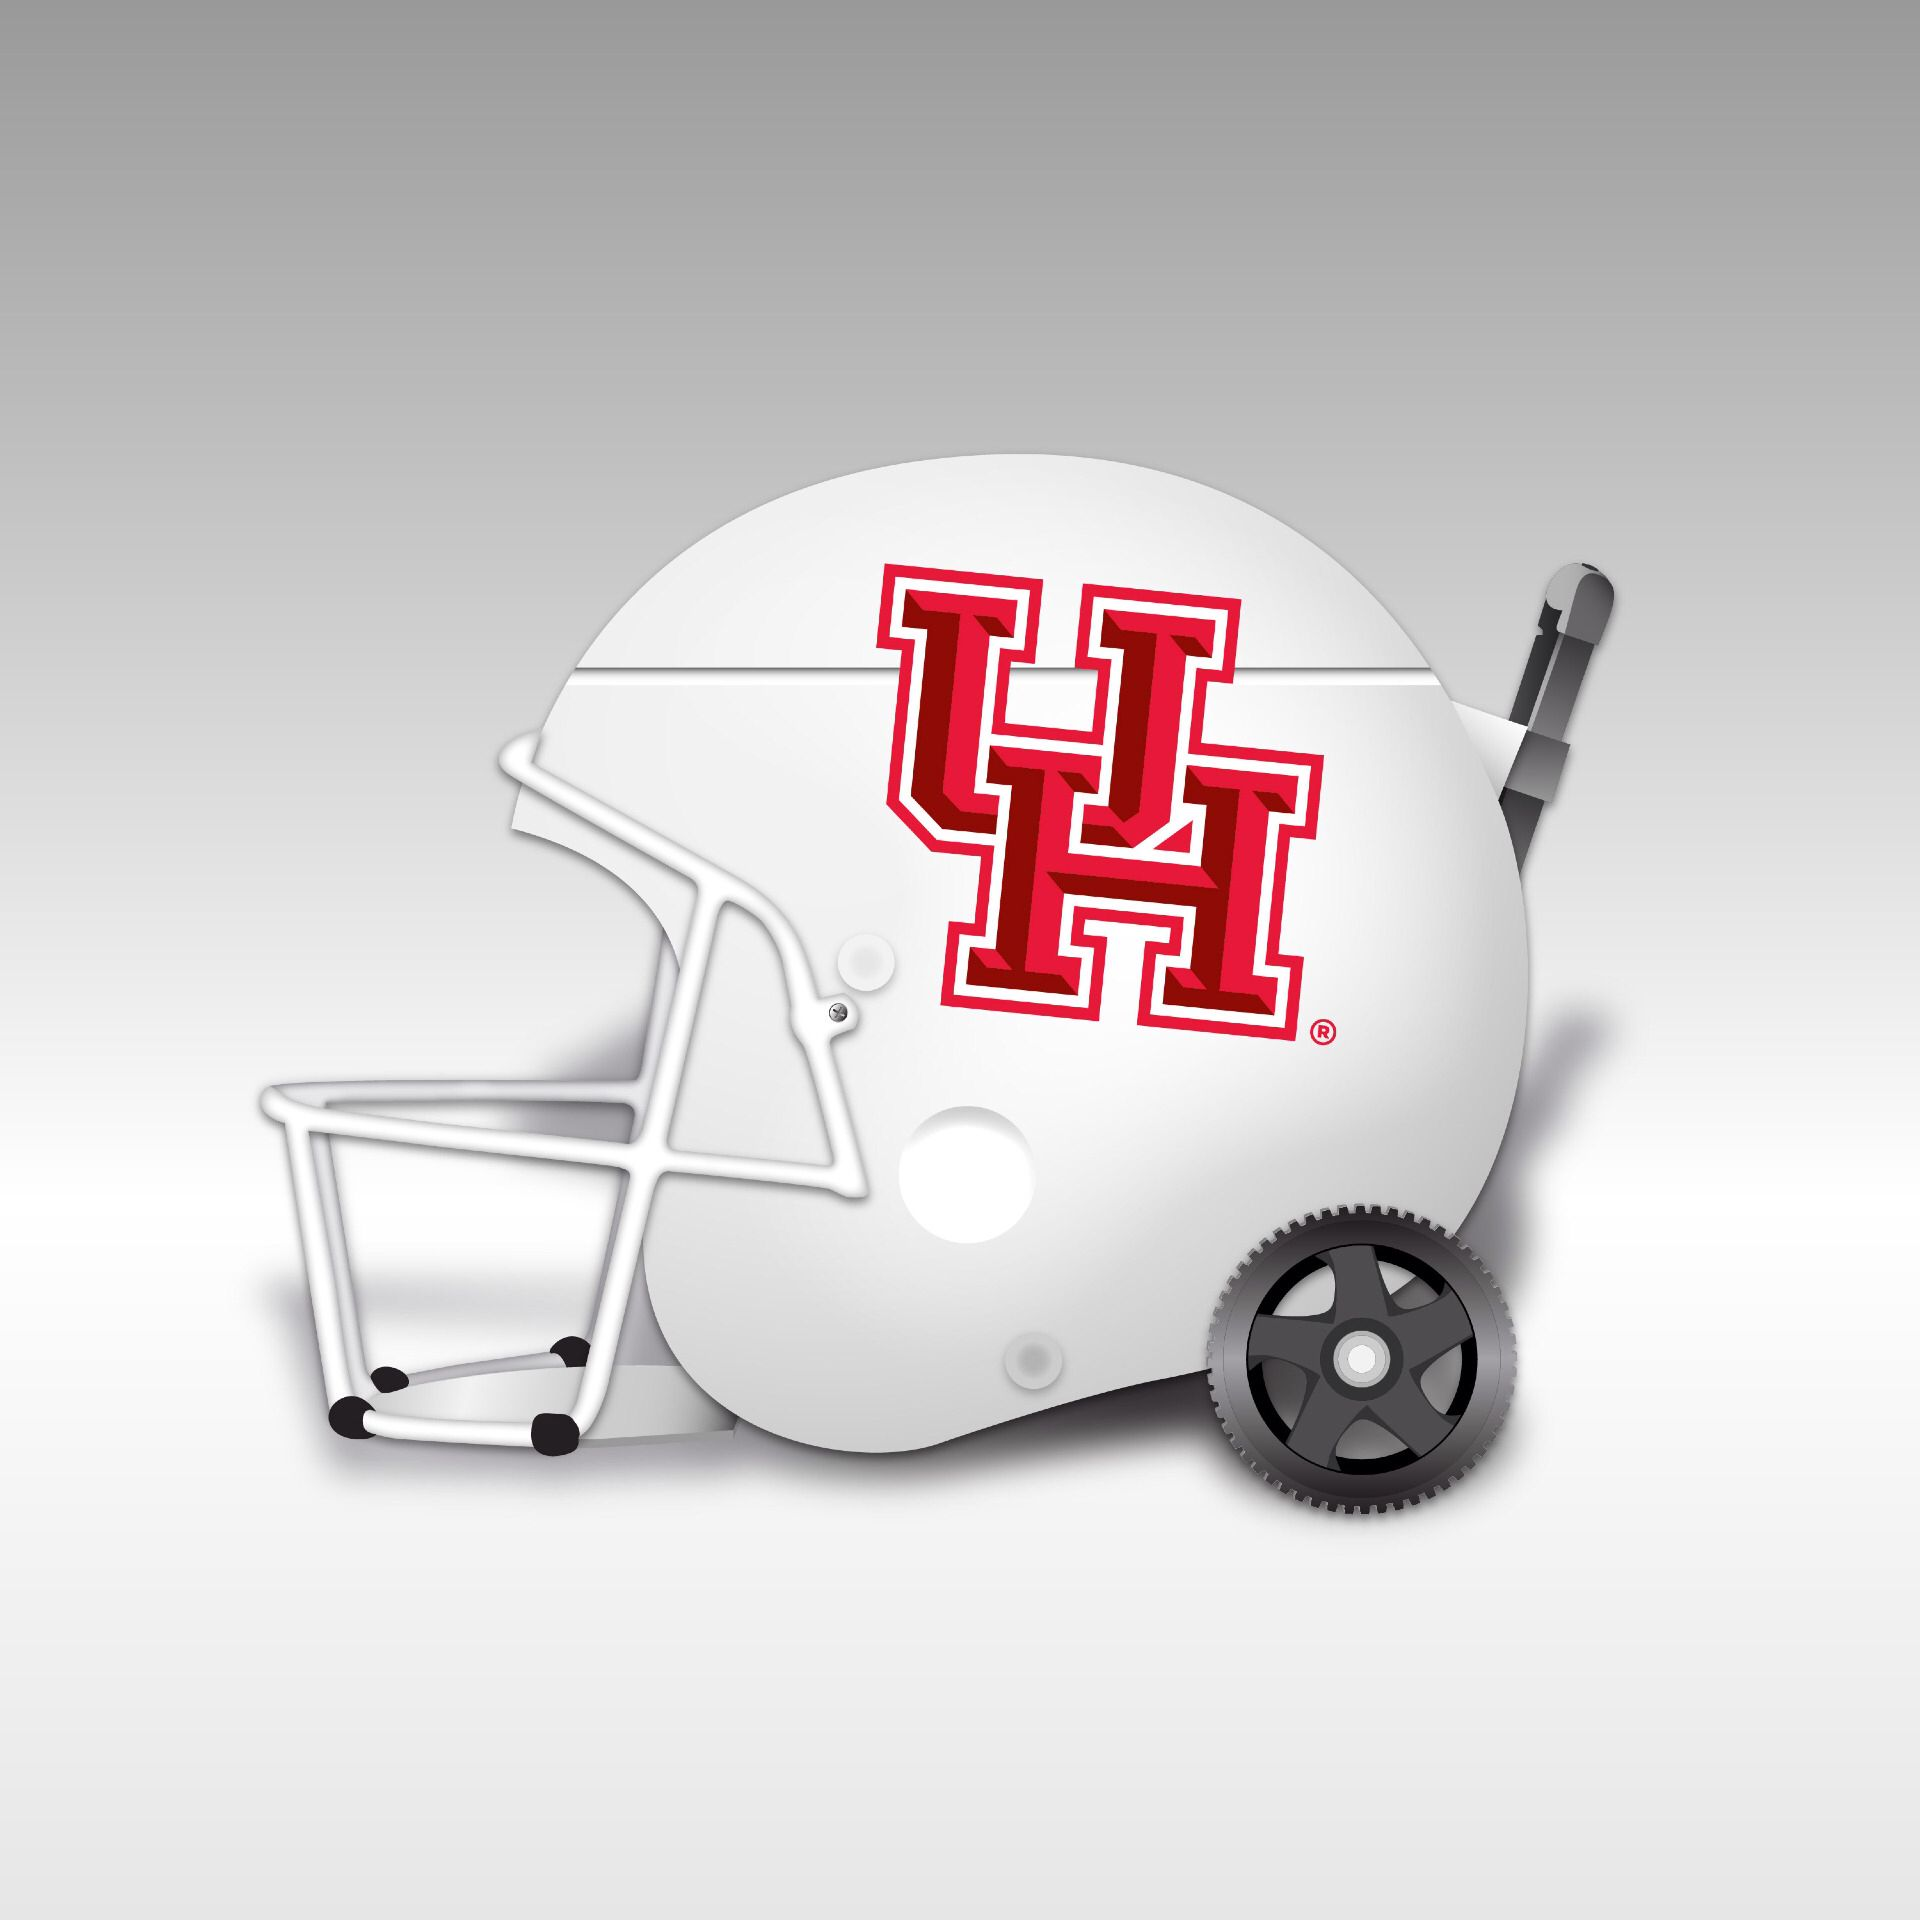 What is this? I'm glad I asked. LOL. University of Houston